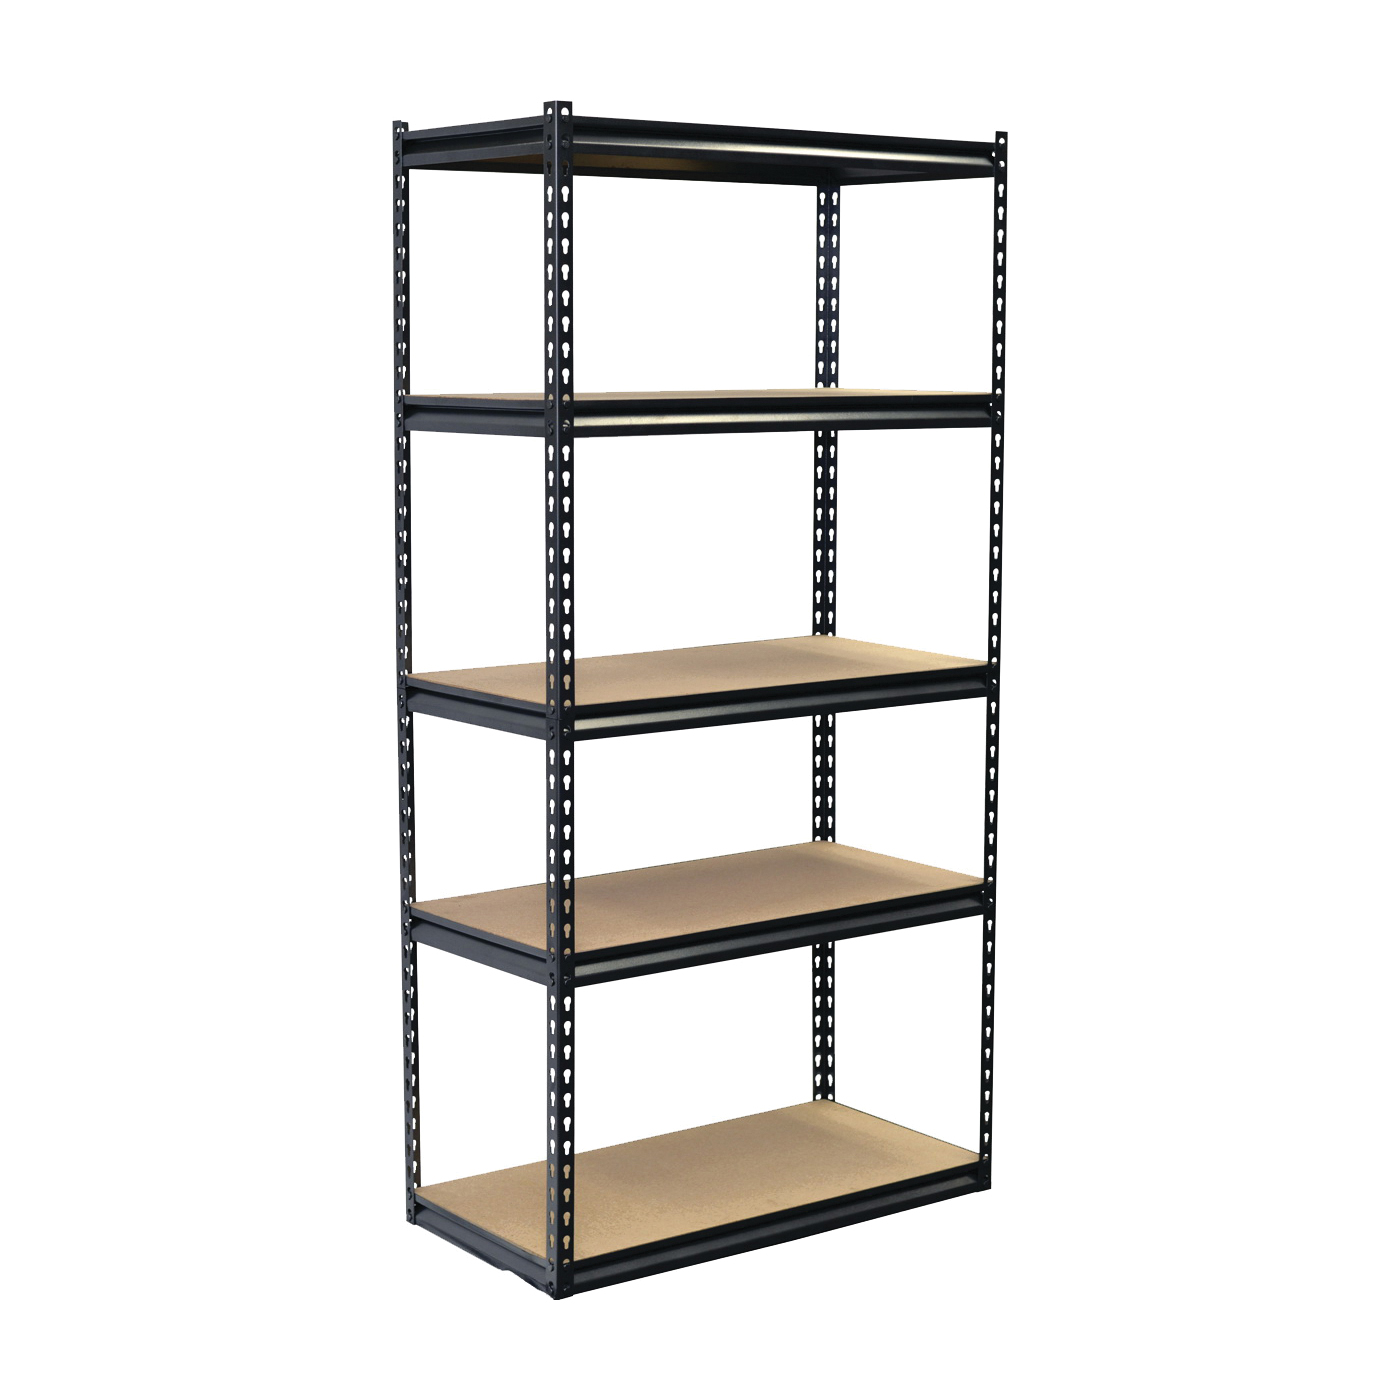 Picture of Storage Concepts SCB1505W Boltless Shelving Unit, 4000 lb Capacity, 5-Shelf, 36 in OAW, 18 in OAD, 72 in OAH